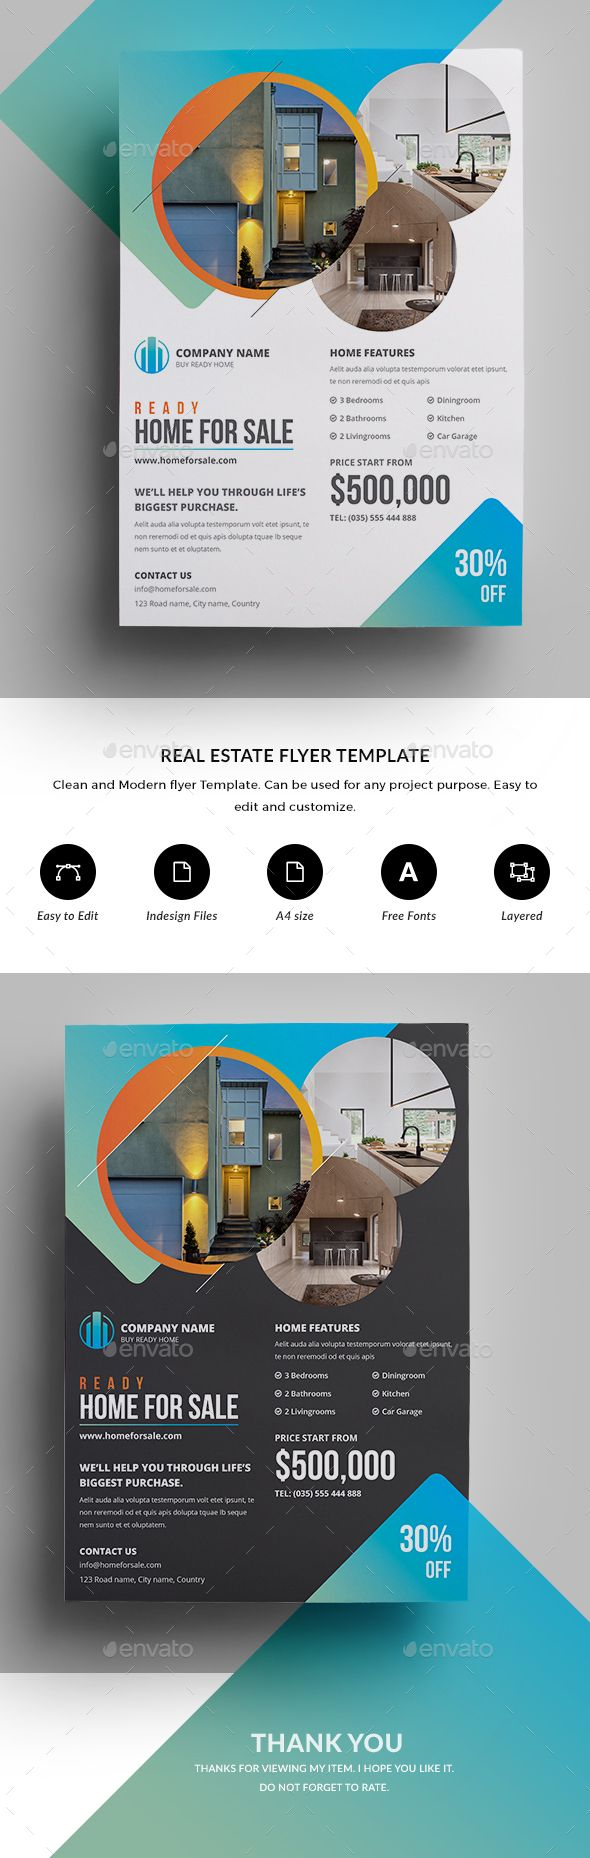 Real Estate Flyer  Real Estate Flyers Real Estate And Flyer Template